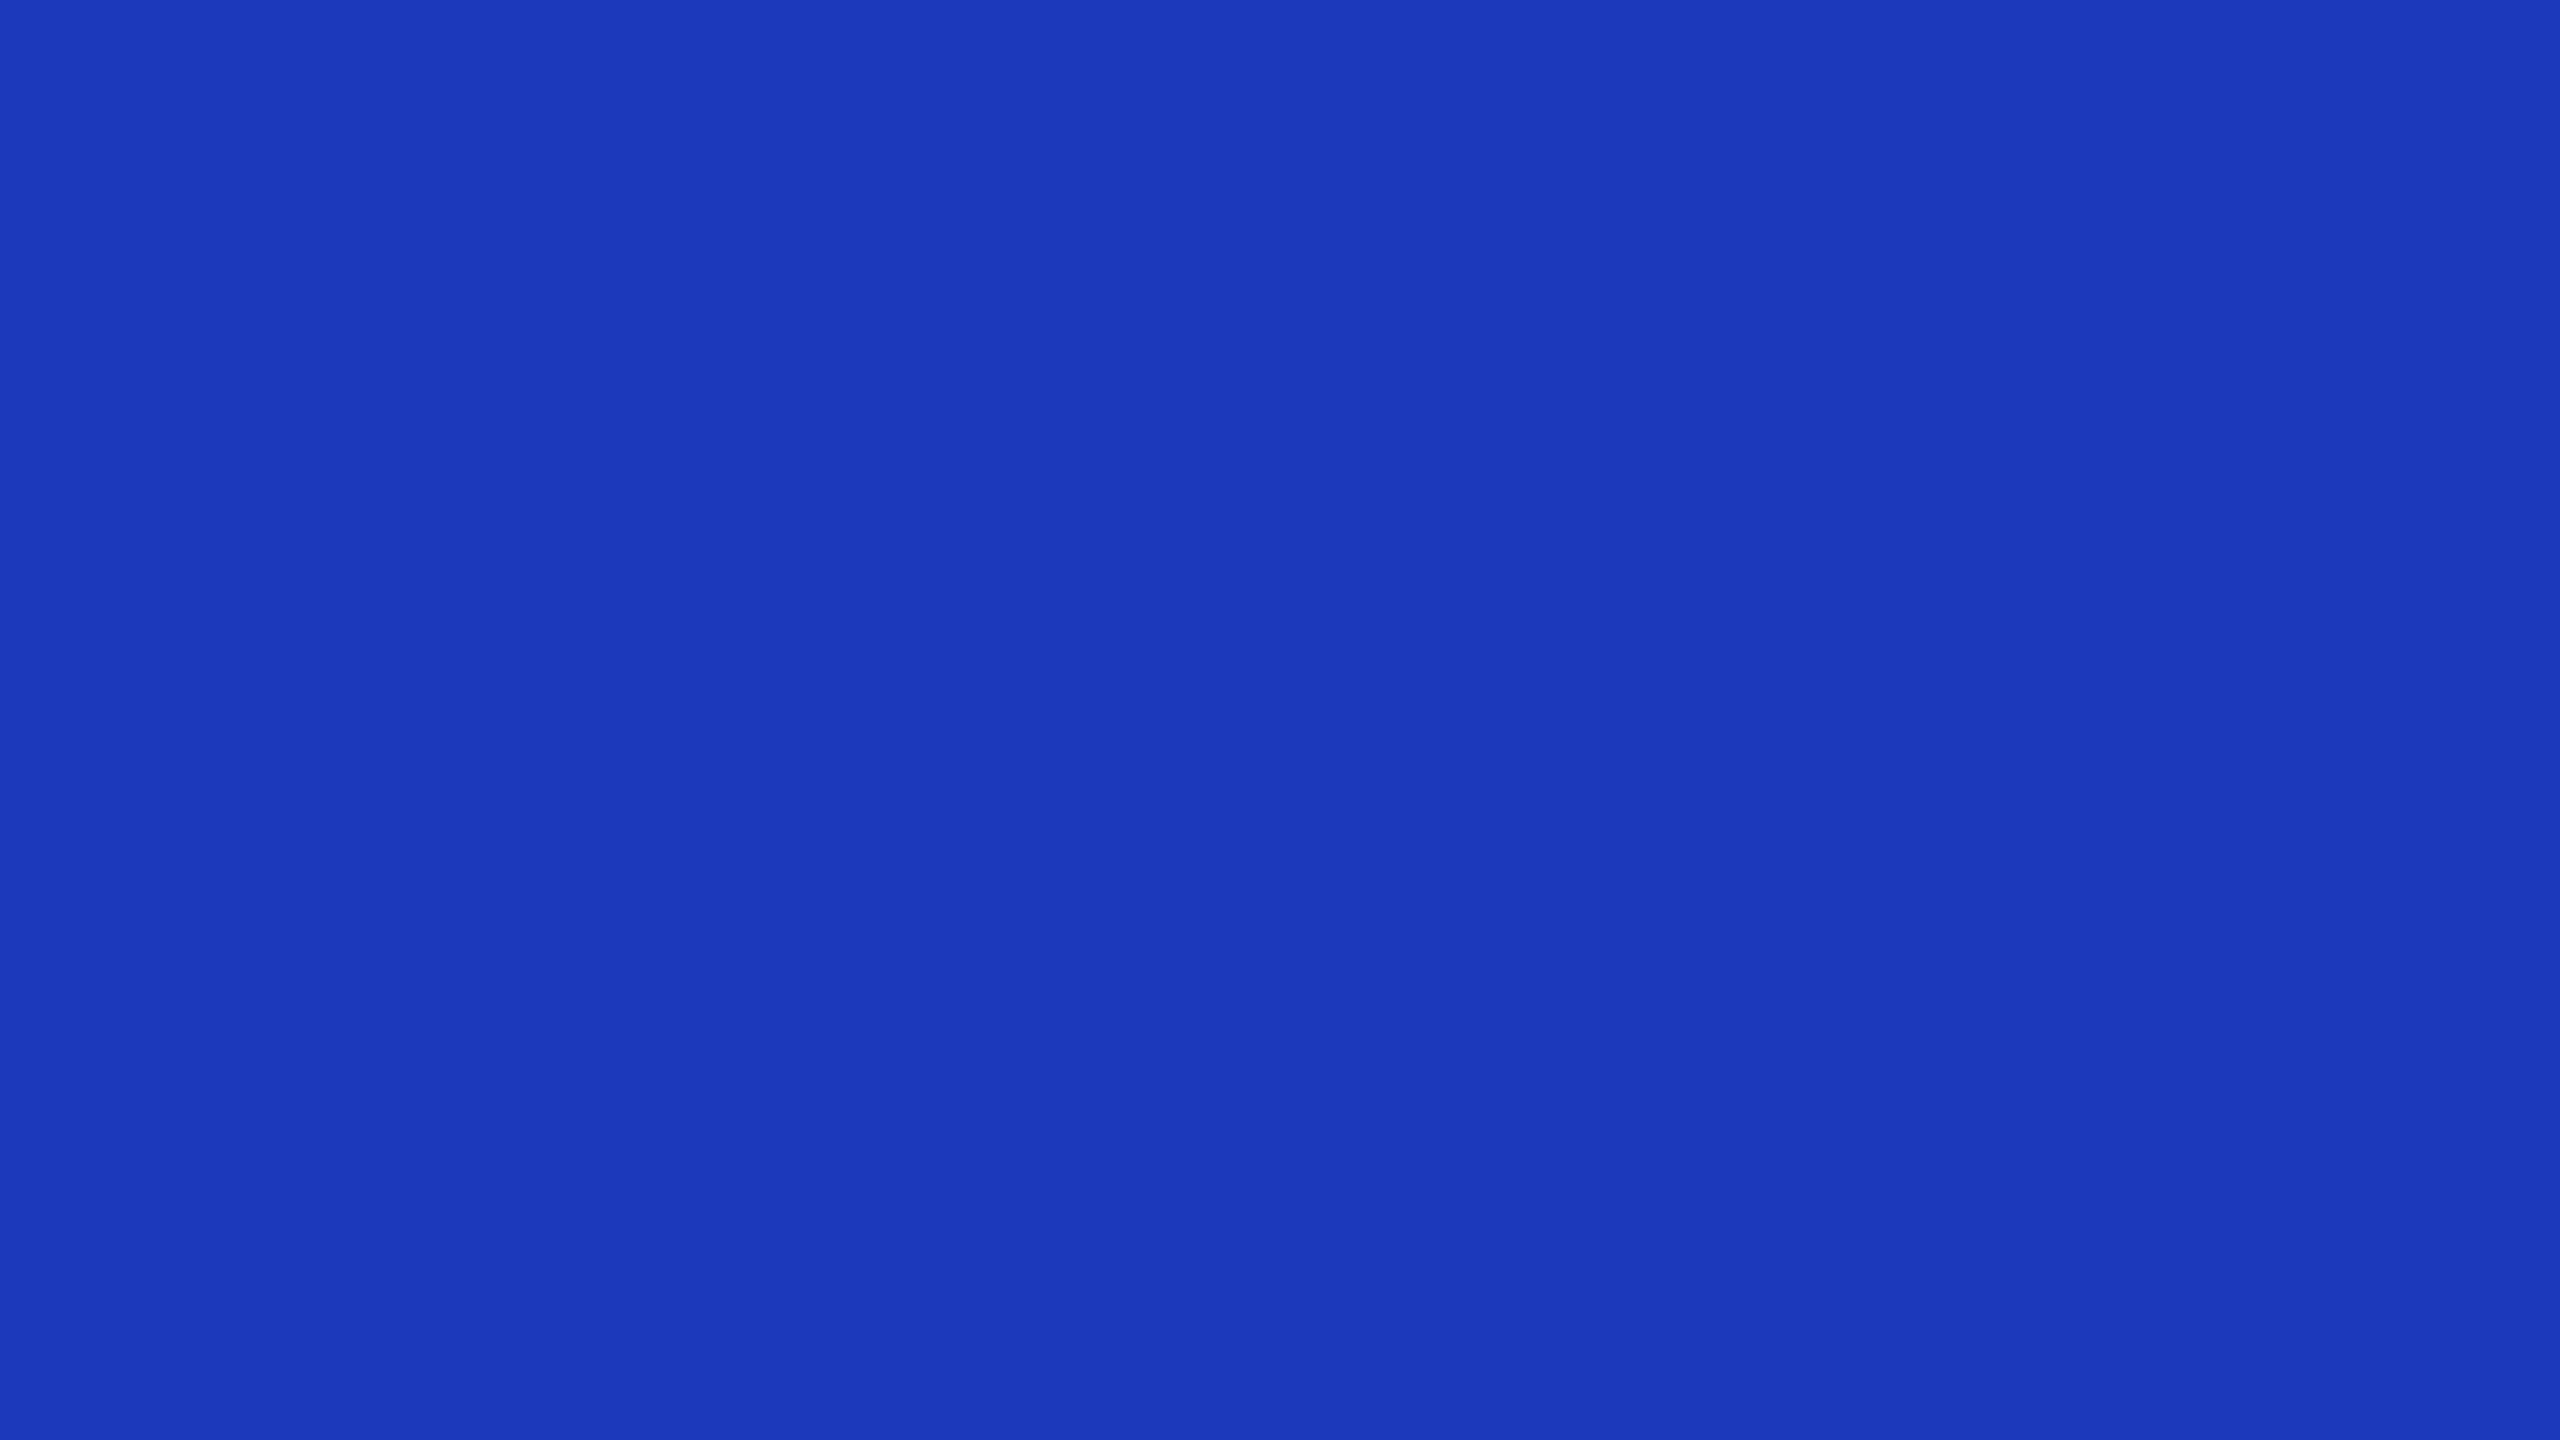 2560x1440 Persian Blue Solid Color Background